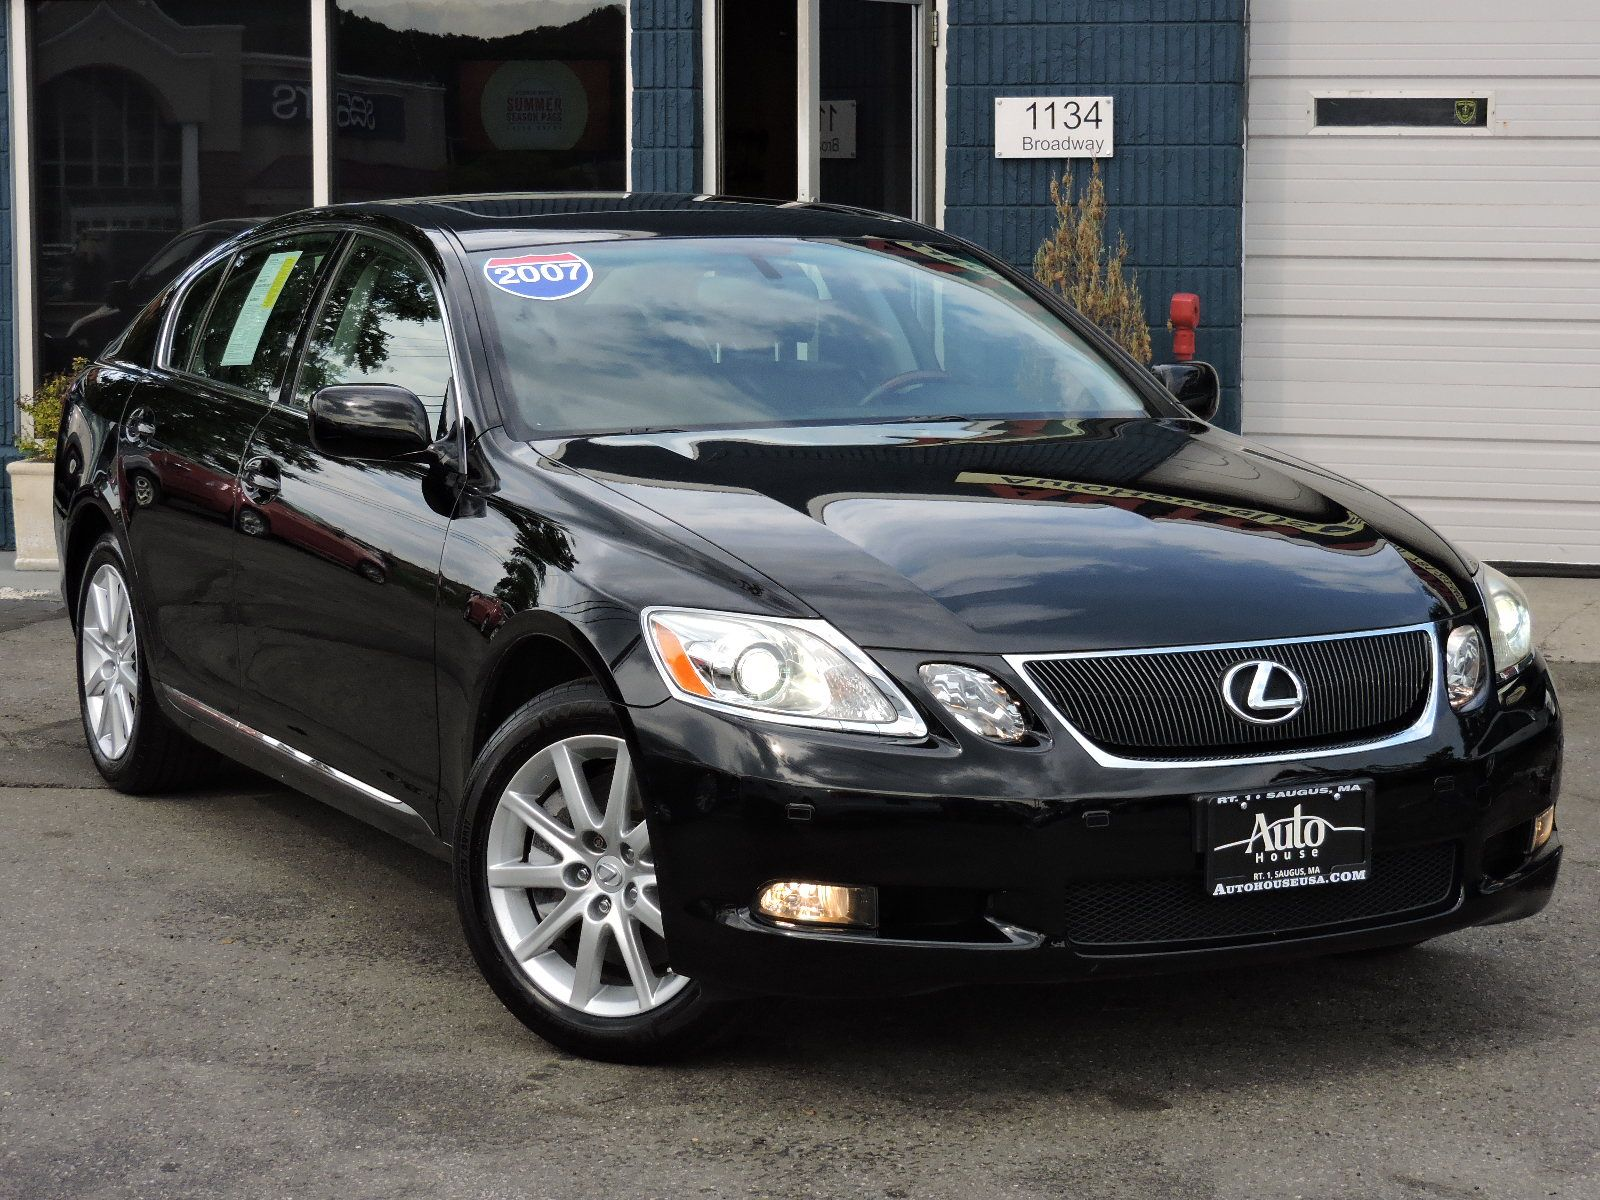 Good 2007 Lexus GS 350 AWD ...